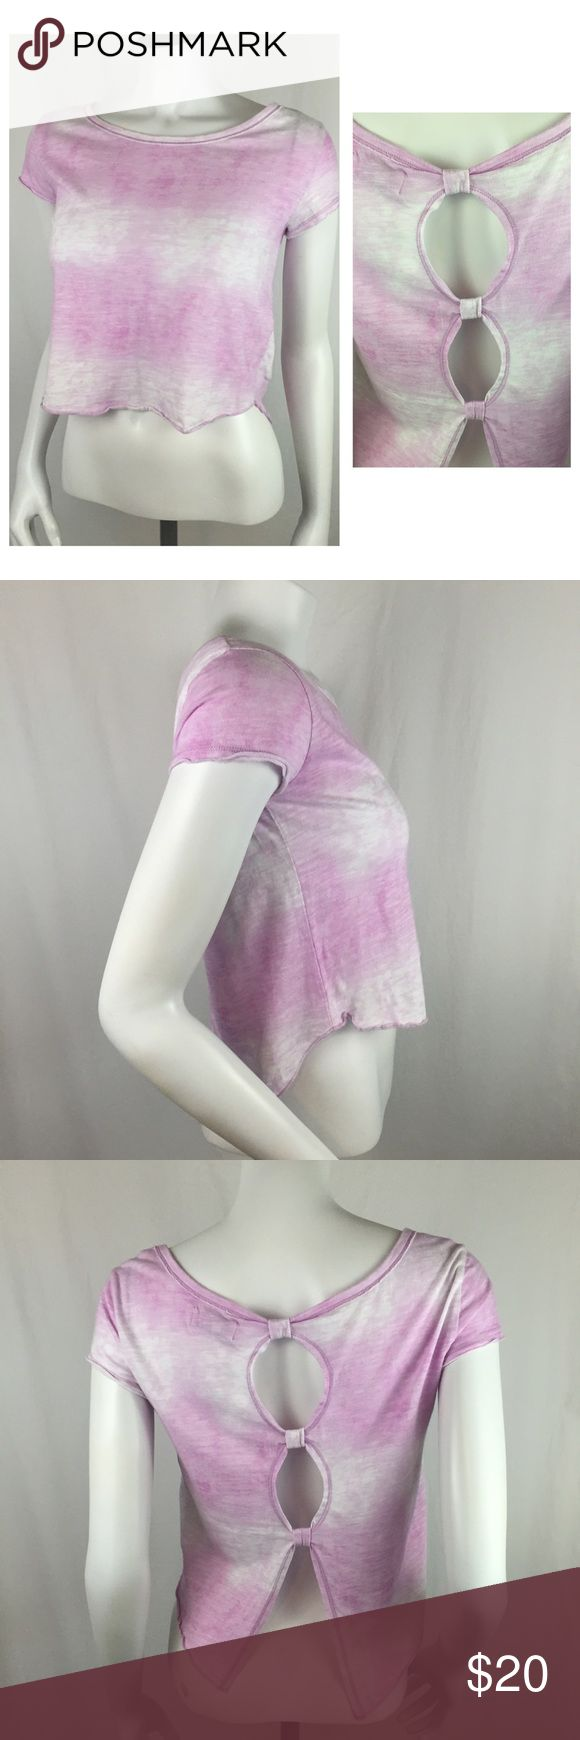 """Abercrombie Kids Cropped Festival Tie Dye Top Amazing Abercrombie Kids Cropped Festival Tie Dye Top. Kids size large fits my medium mannequin line a dream. Cute open back with ties connecting sections. Beautiful top for any summer outing. 16"""" long and 15"""" across the chest Abercrombie & Fitch Tops Crop Tops"""